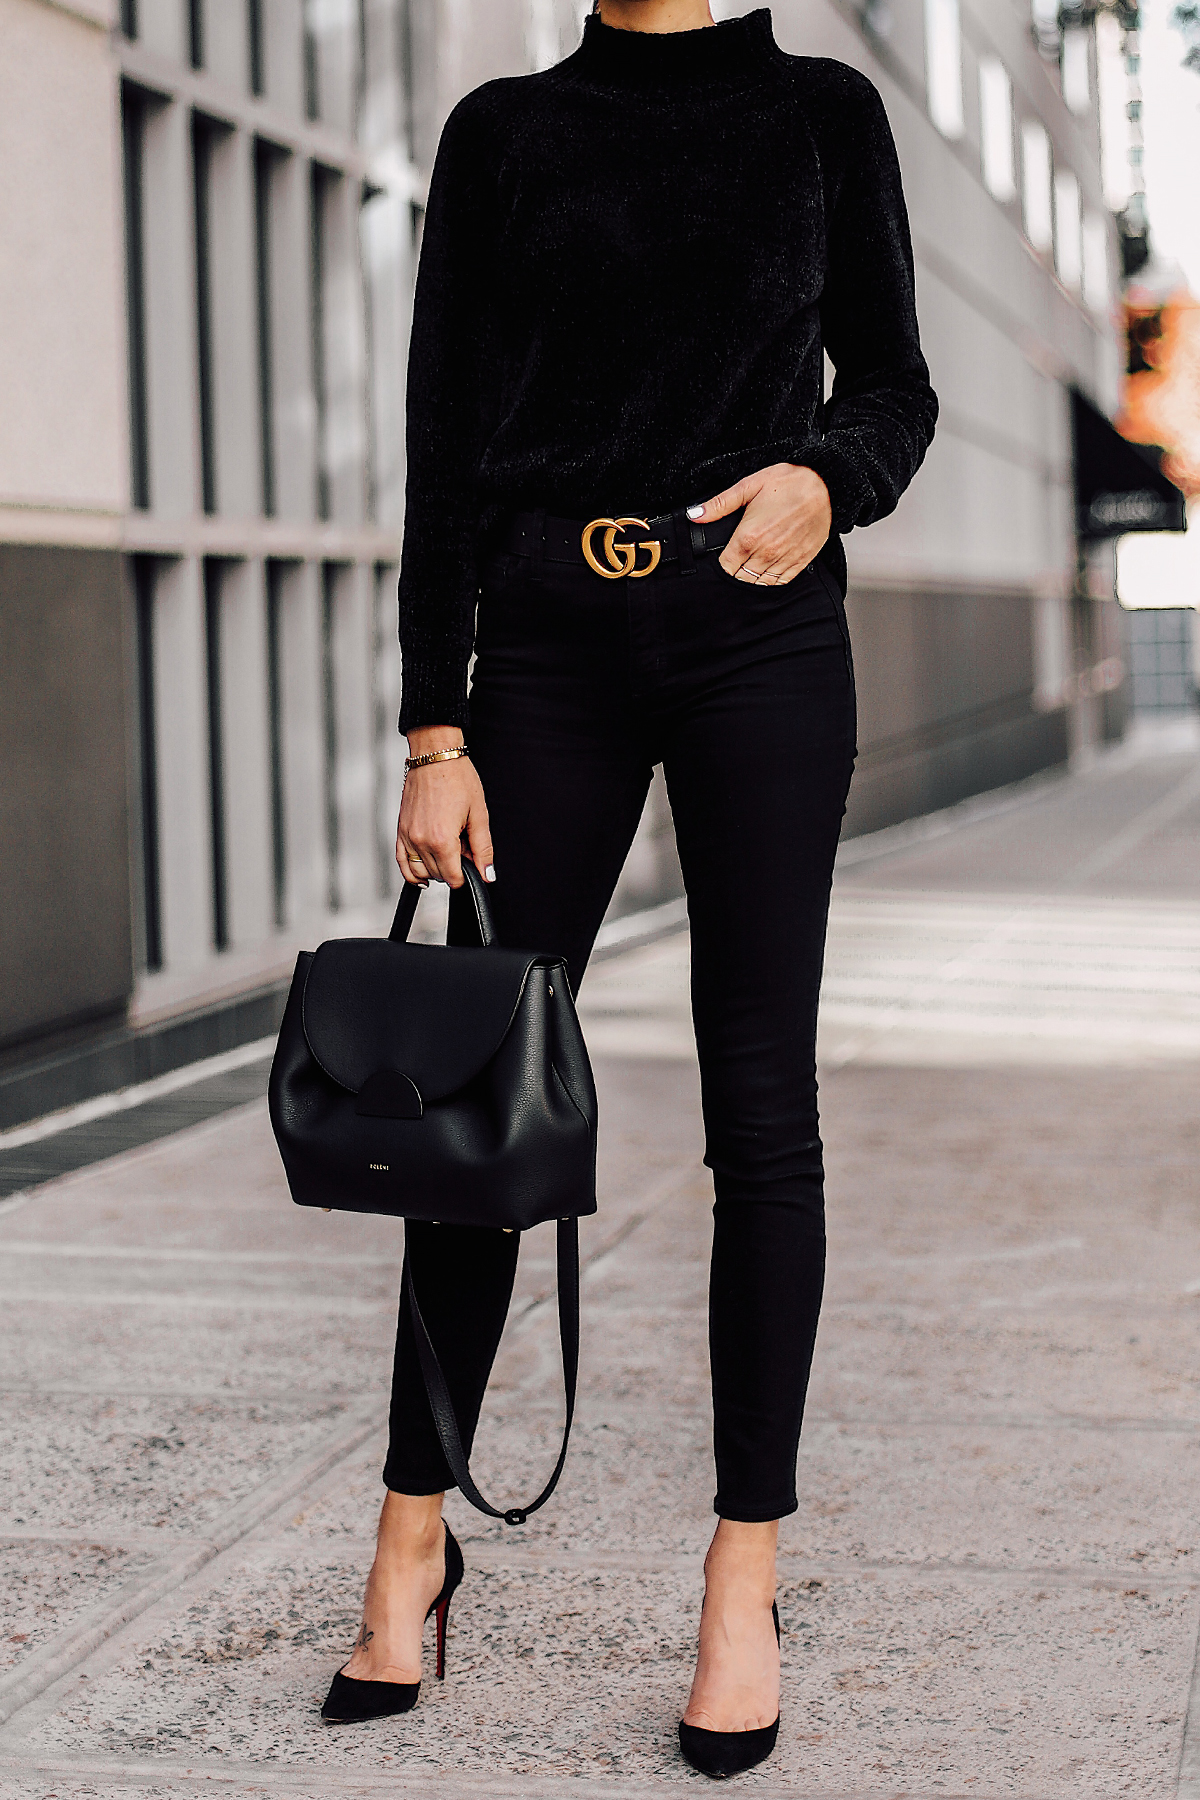 Woman Wearing Black Chenille Sweater Black Skinny Jeans Black Pumps Black Gucci Belt Black Satchel Handbag Fashion Jackson San Diego Fashion Blogger Street Style